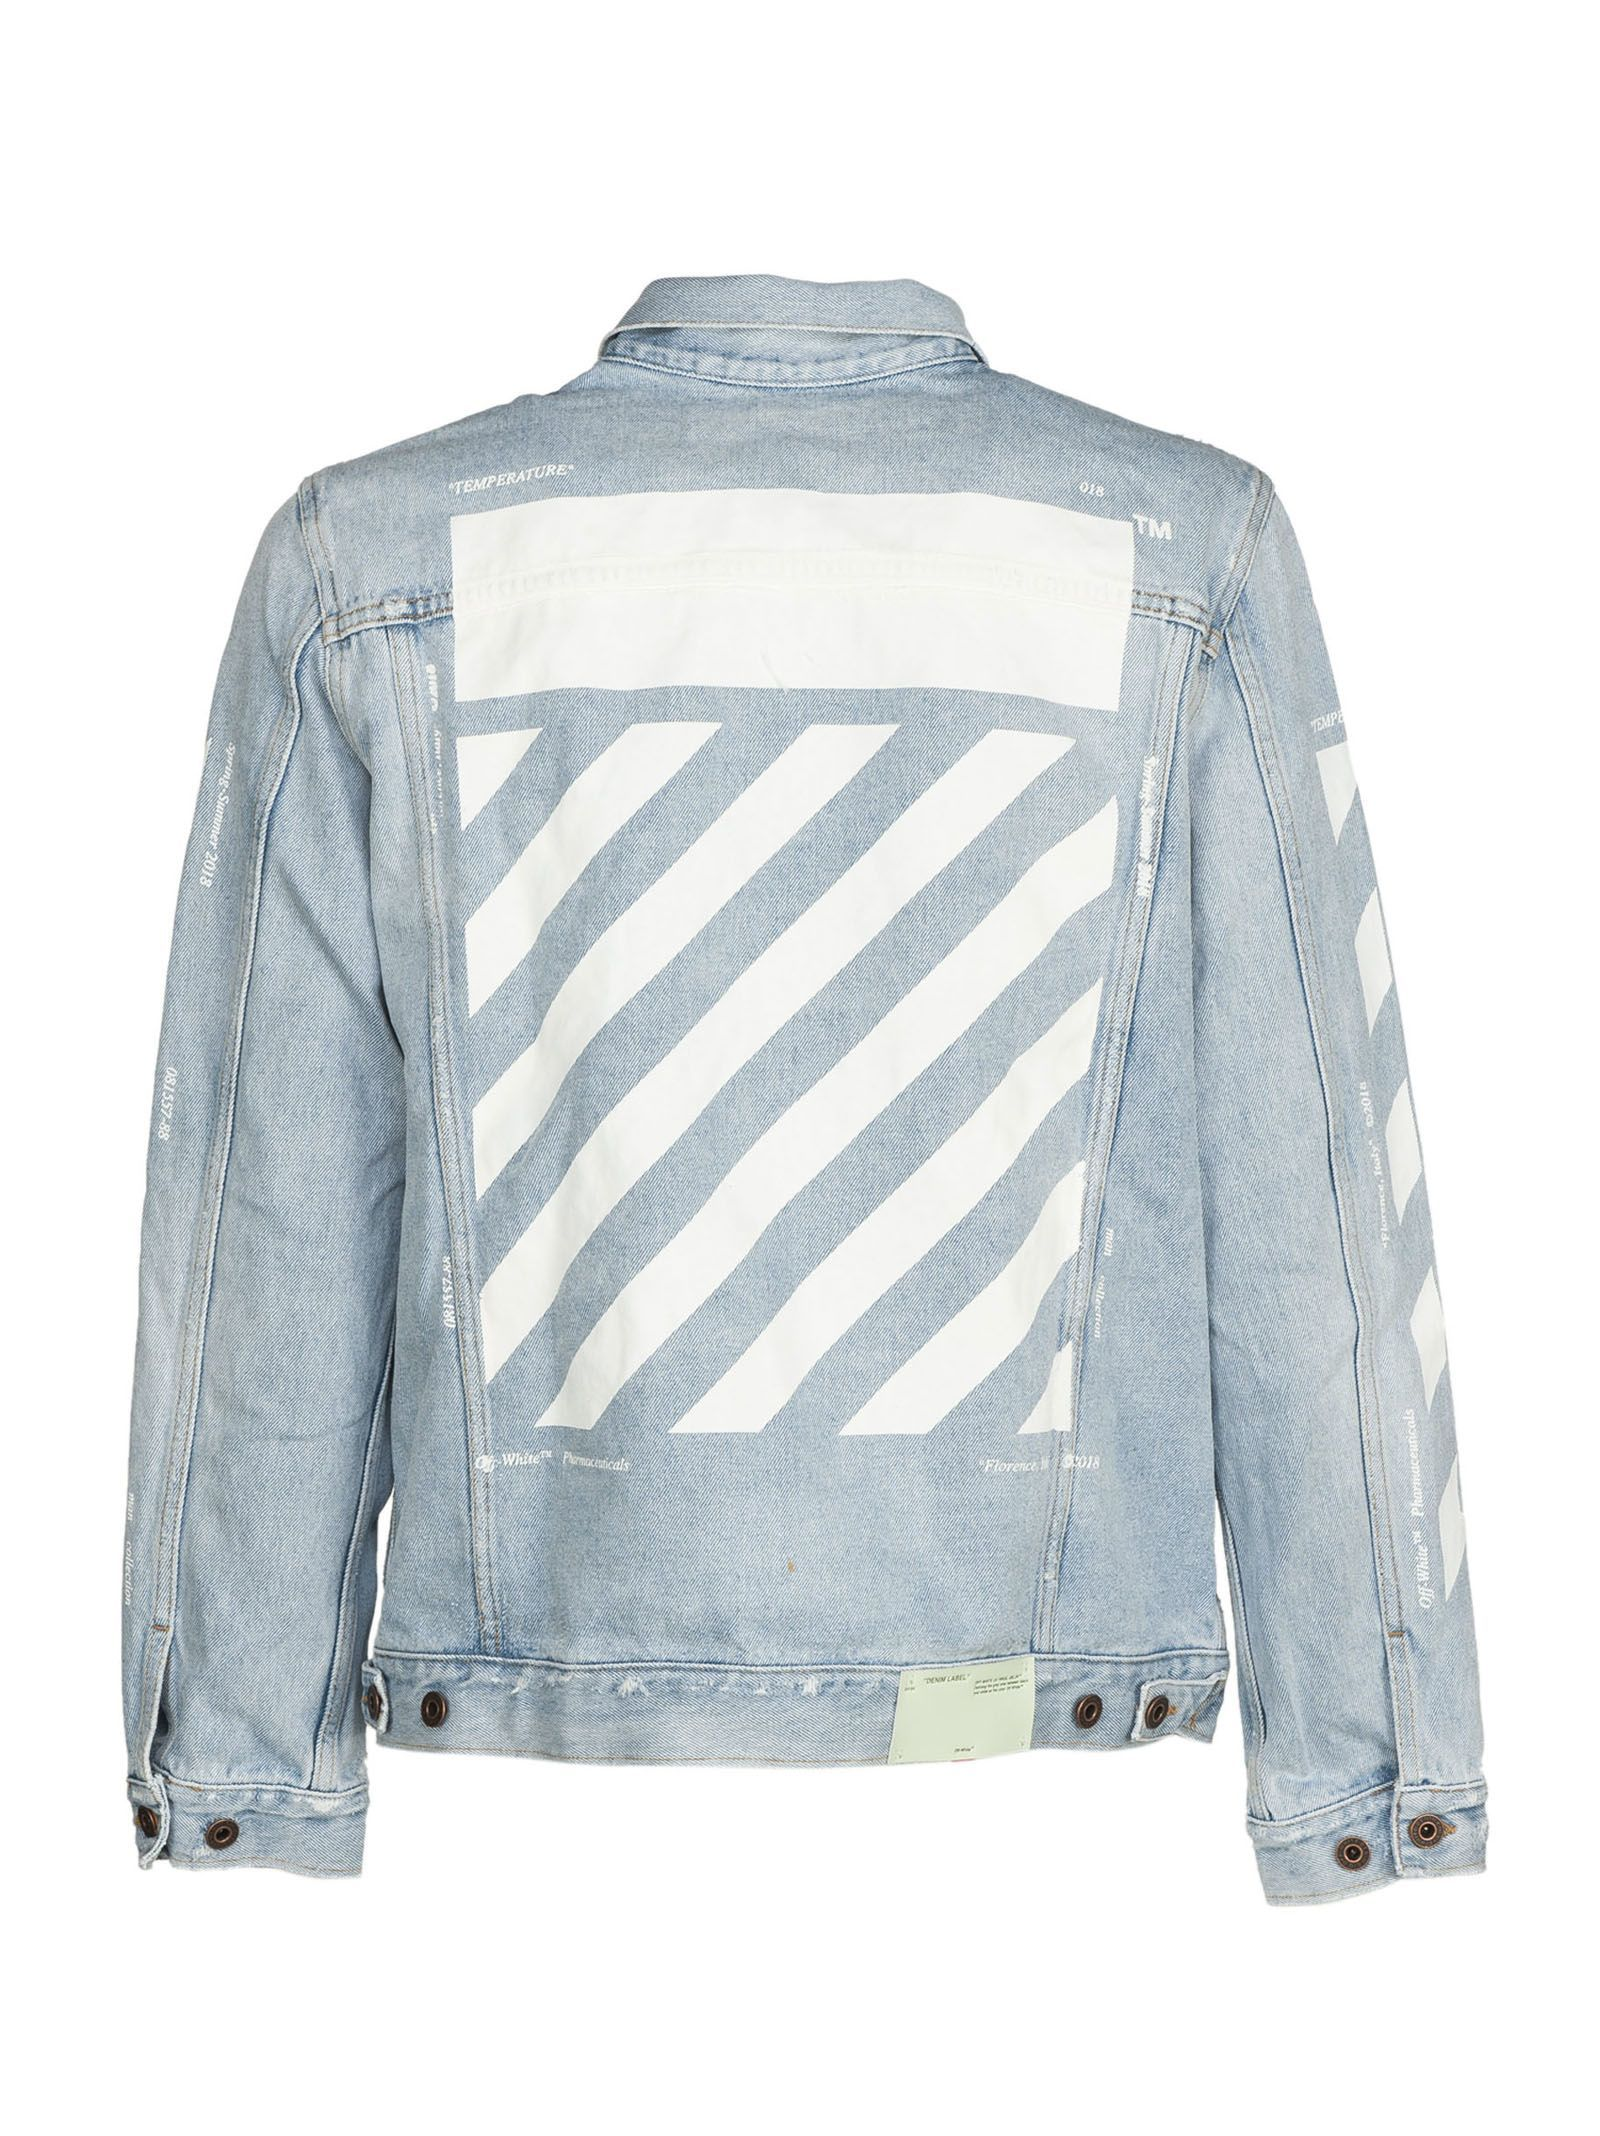 9498be5c7712 OFF-WHITE OFF-WHITE PRINTED DENIM JACKET.  off-white  cloth